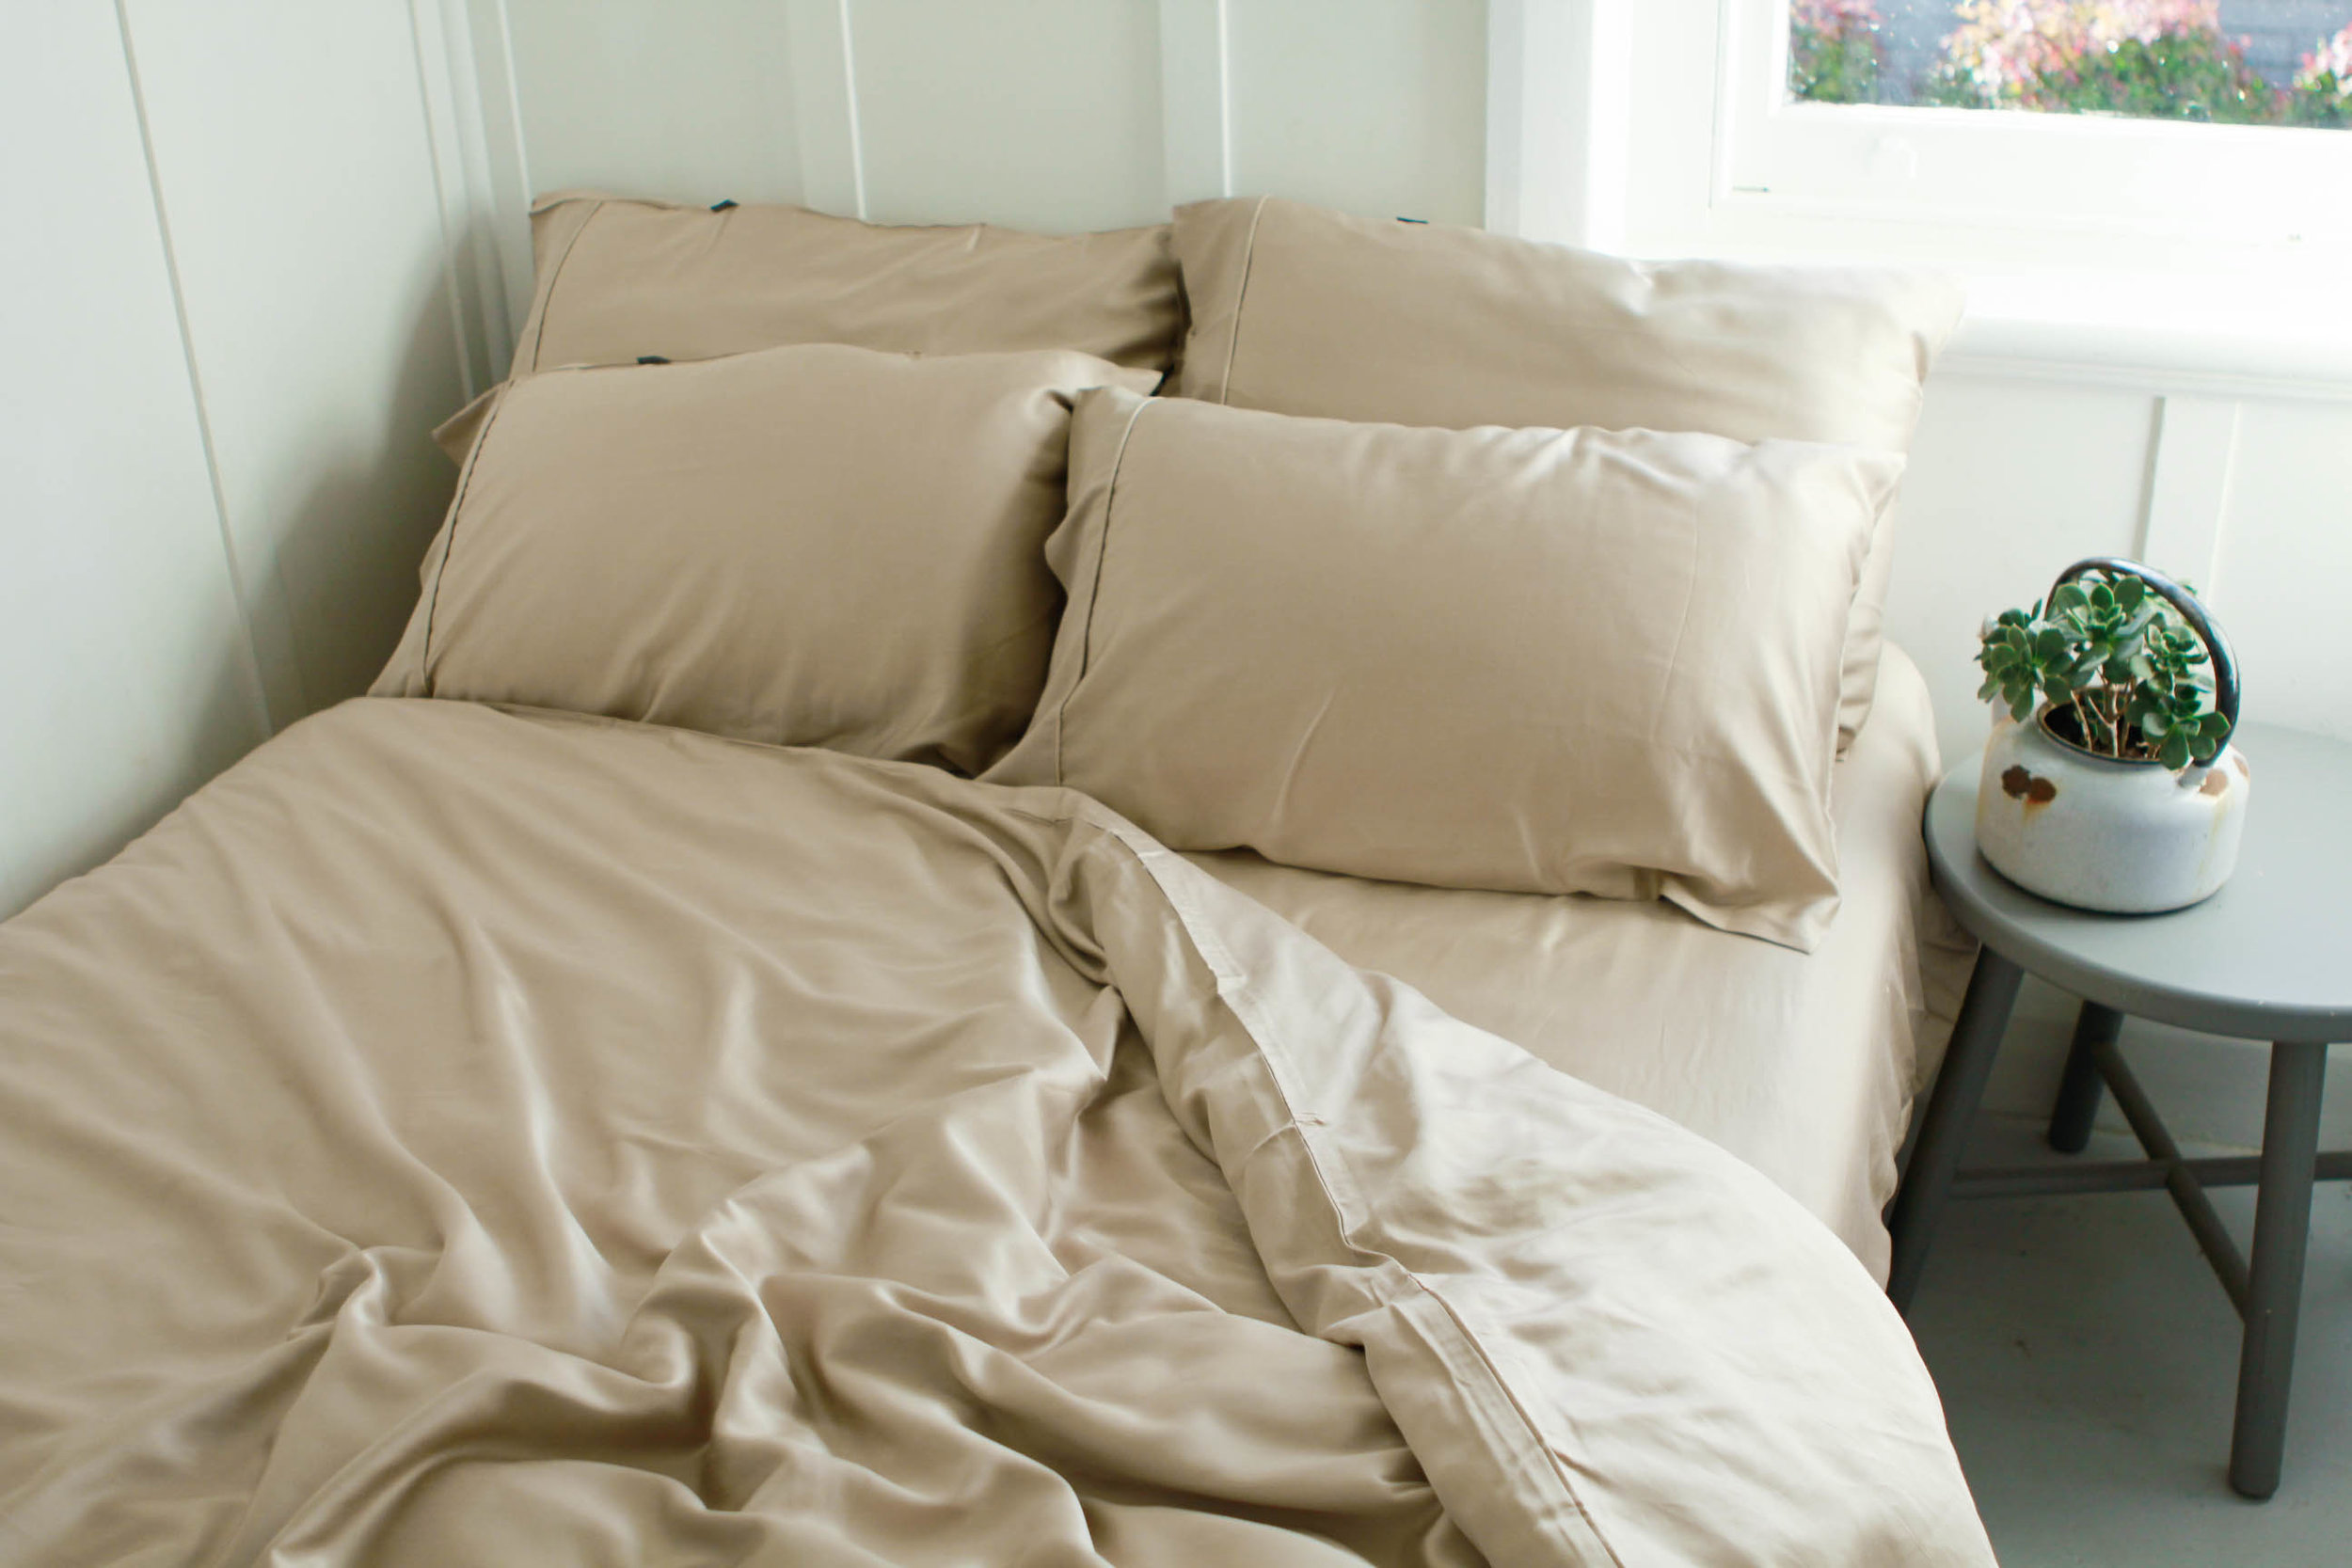 digital bed infused sheets home ettitude kickstarter creates on mg trends coffee bamboo